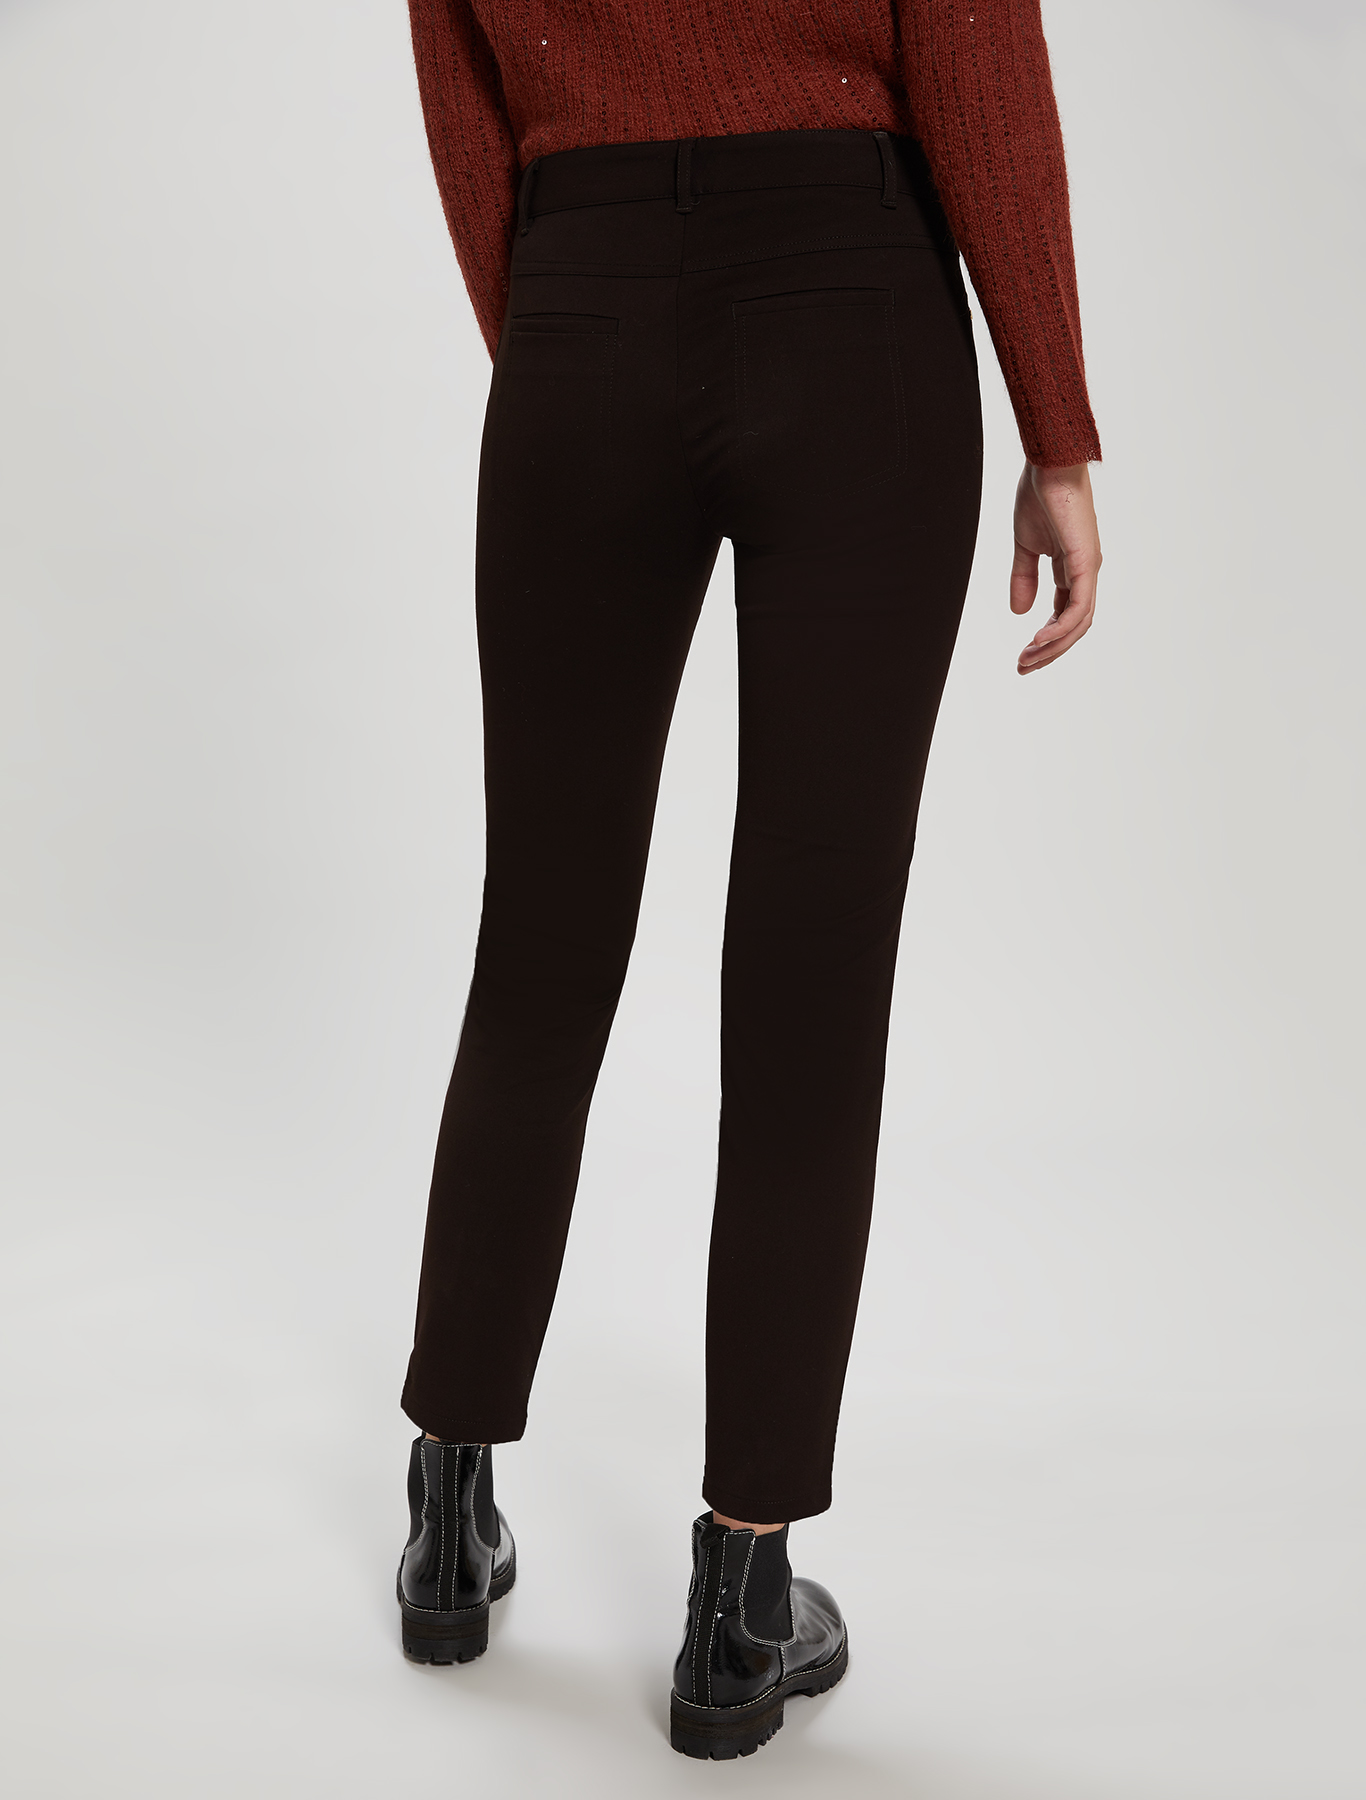 Skinny-fit tricotine trousers - brown - pennyblack